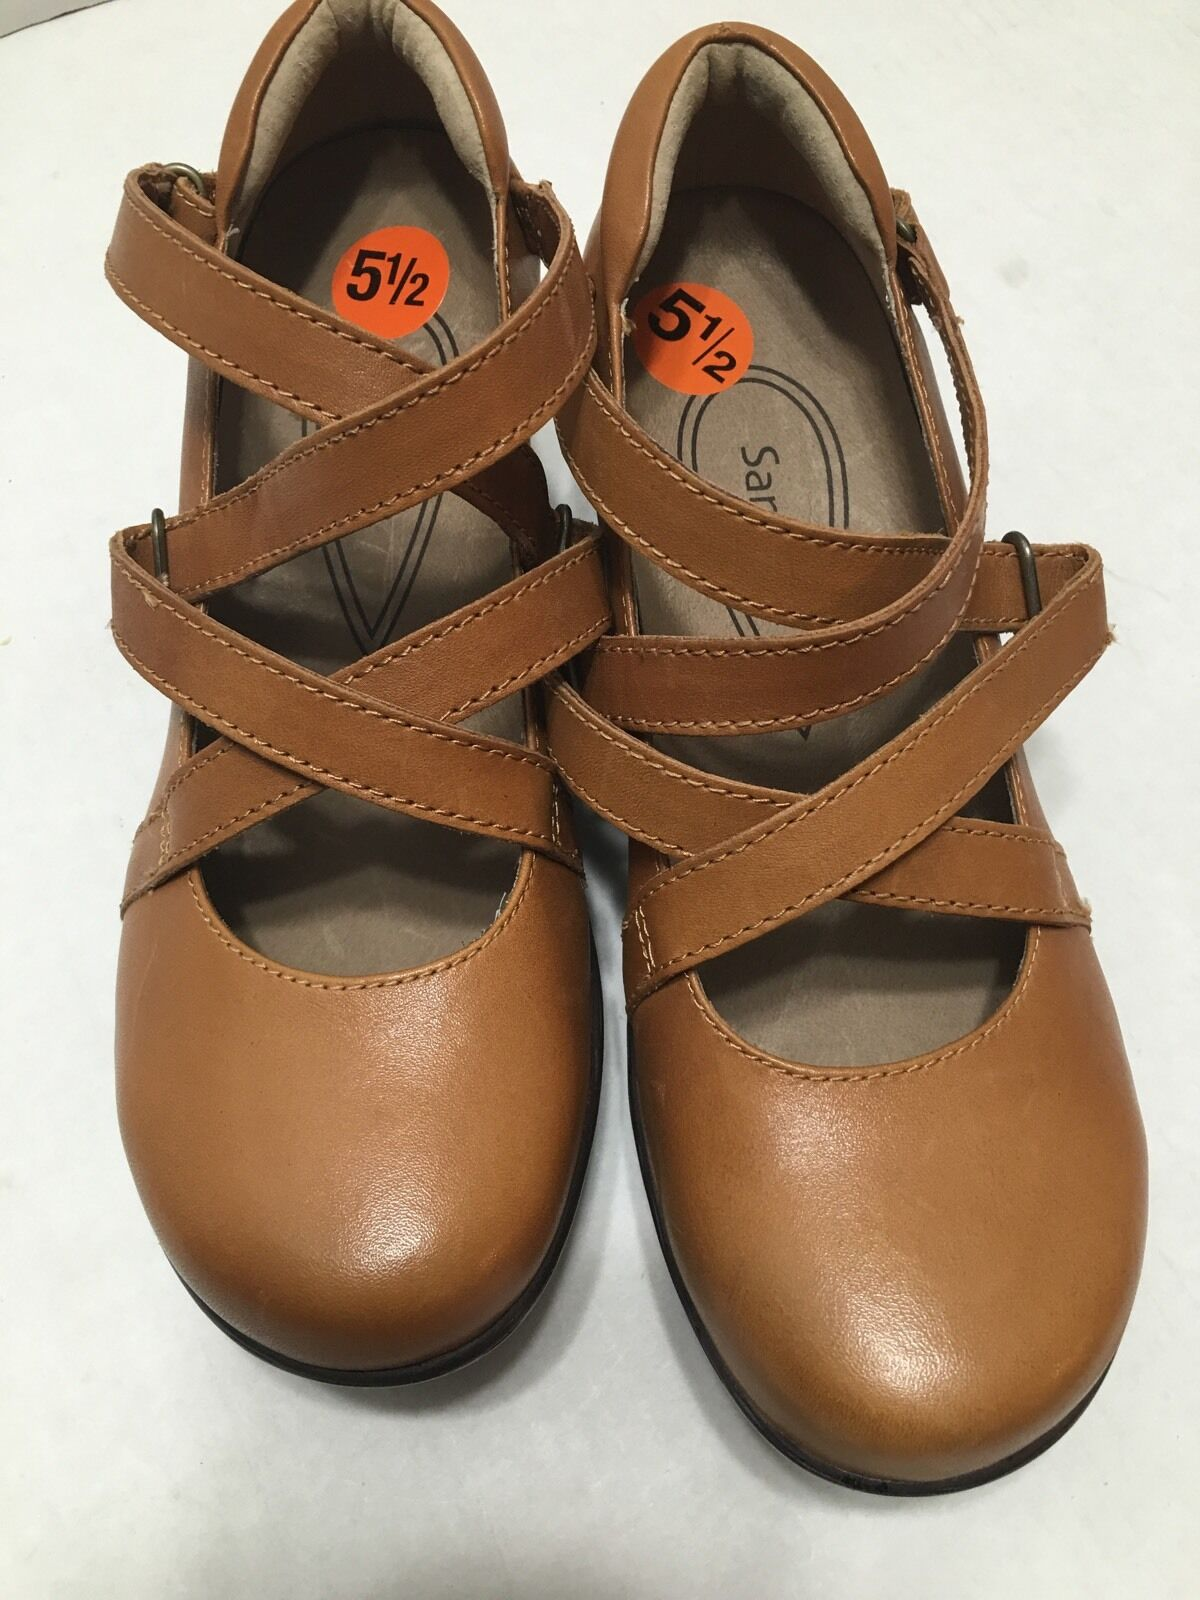 Sanita Neve Tan marron Leather chaussures Clogs sz 36 New US Taille 5.5-6